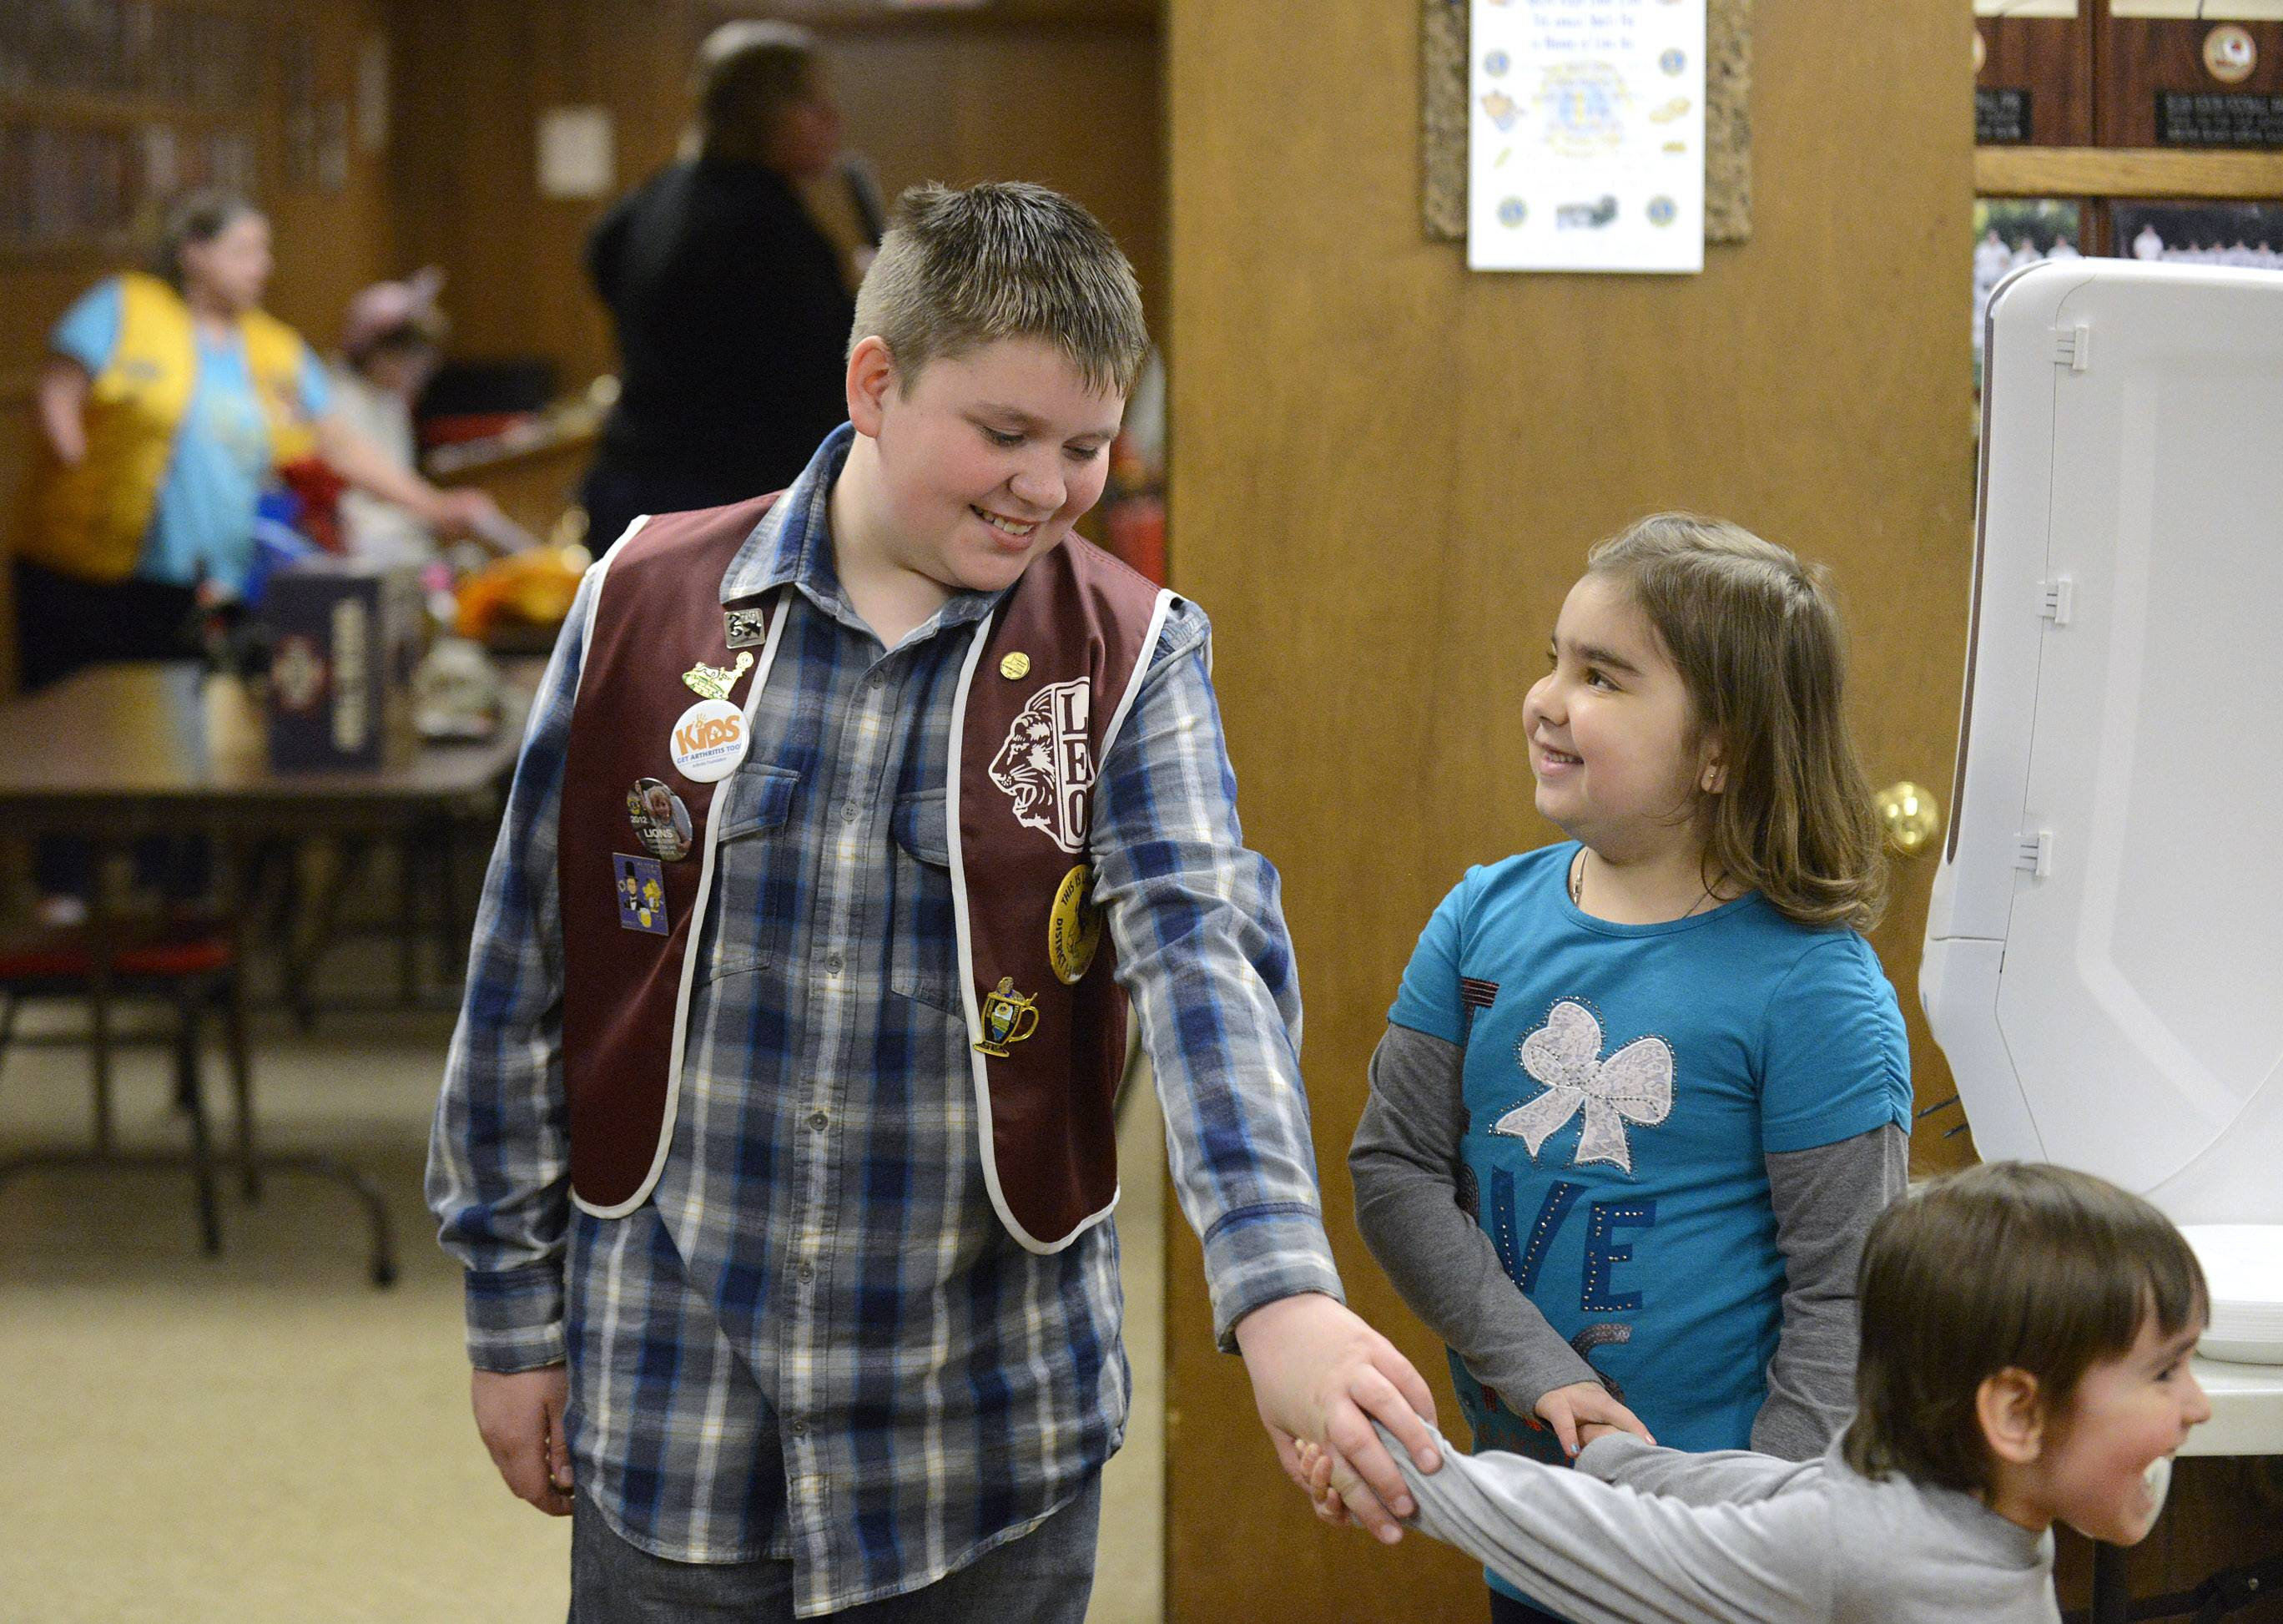 Maria Serban, 6, smiles up at Dylan Snyder, 11, as they play with her younger brother, Victor, 3 1/2, after Dylan presented Maria and her mother, Elena, with a check for almost $4,000 at the South Elgin Lions Club on Wednesday. All live in South Elgin. Maria, a first grader at Willard Elementary School, has a rare form of arthritis and she's was very sick the past few months. Dylan, a fifth grader at the school, raised funds with a  spaghetti dinner and auction last month at the Lions club, where his great grandfather, Leo Snyder, is a member.